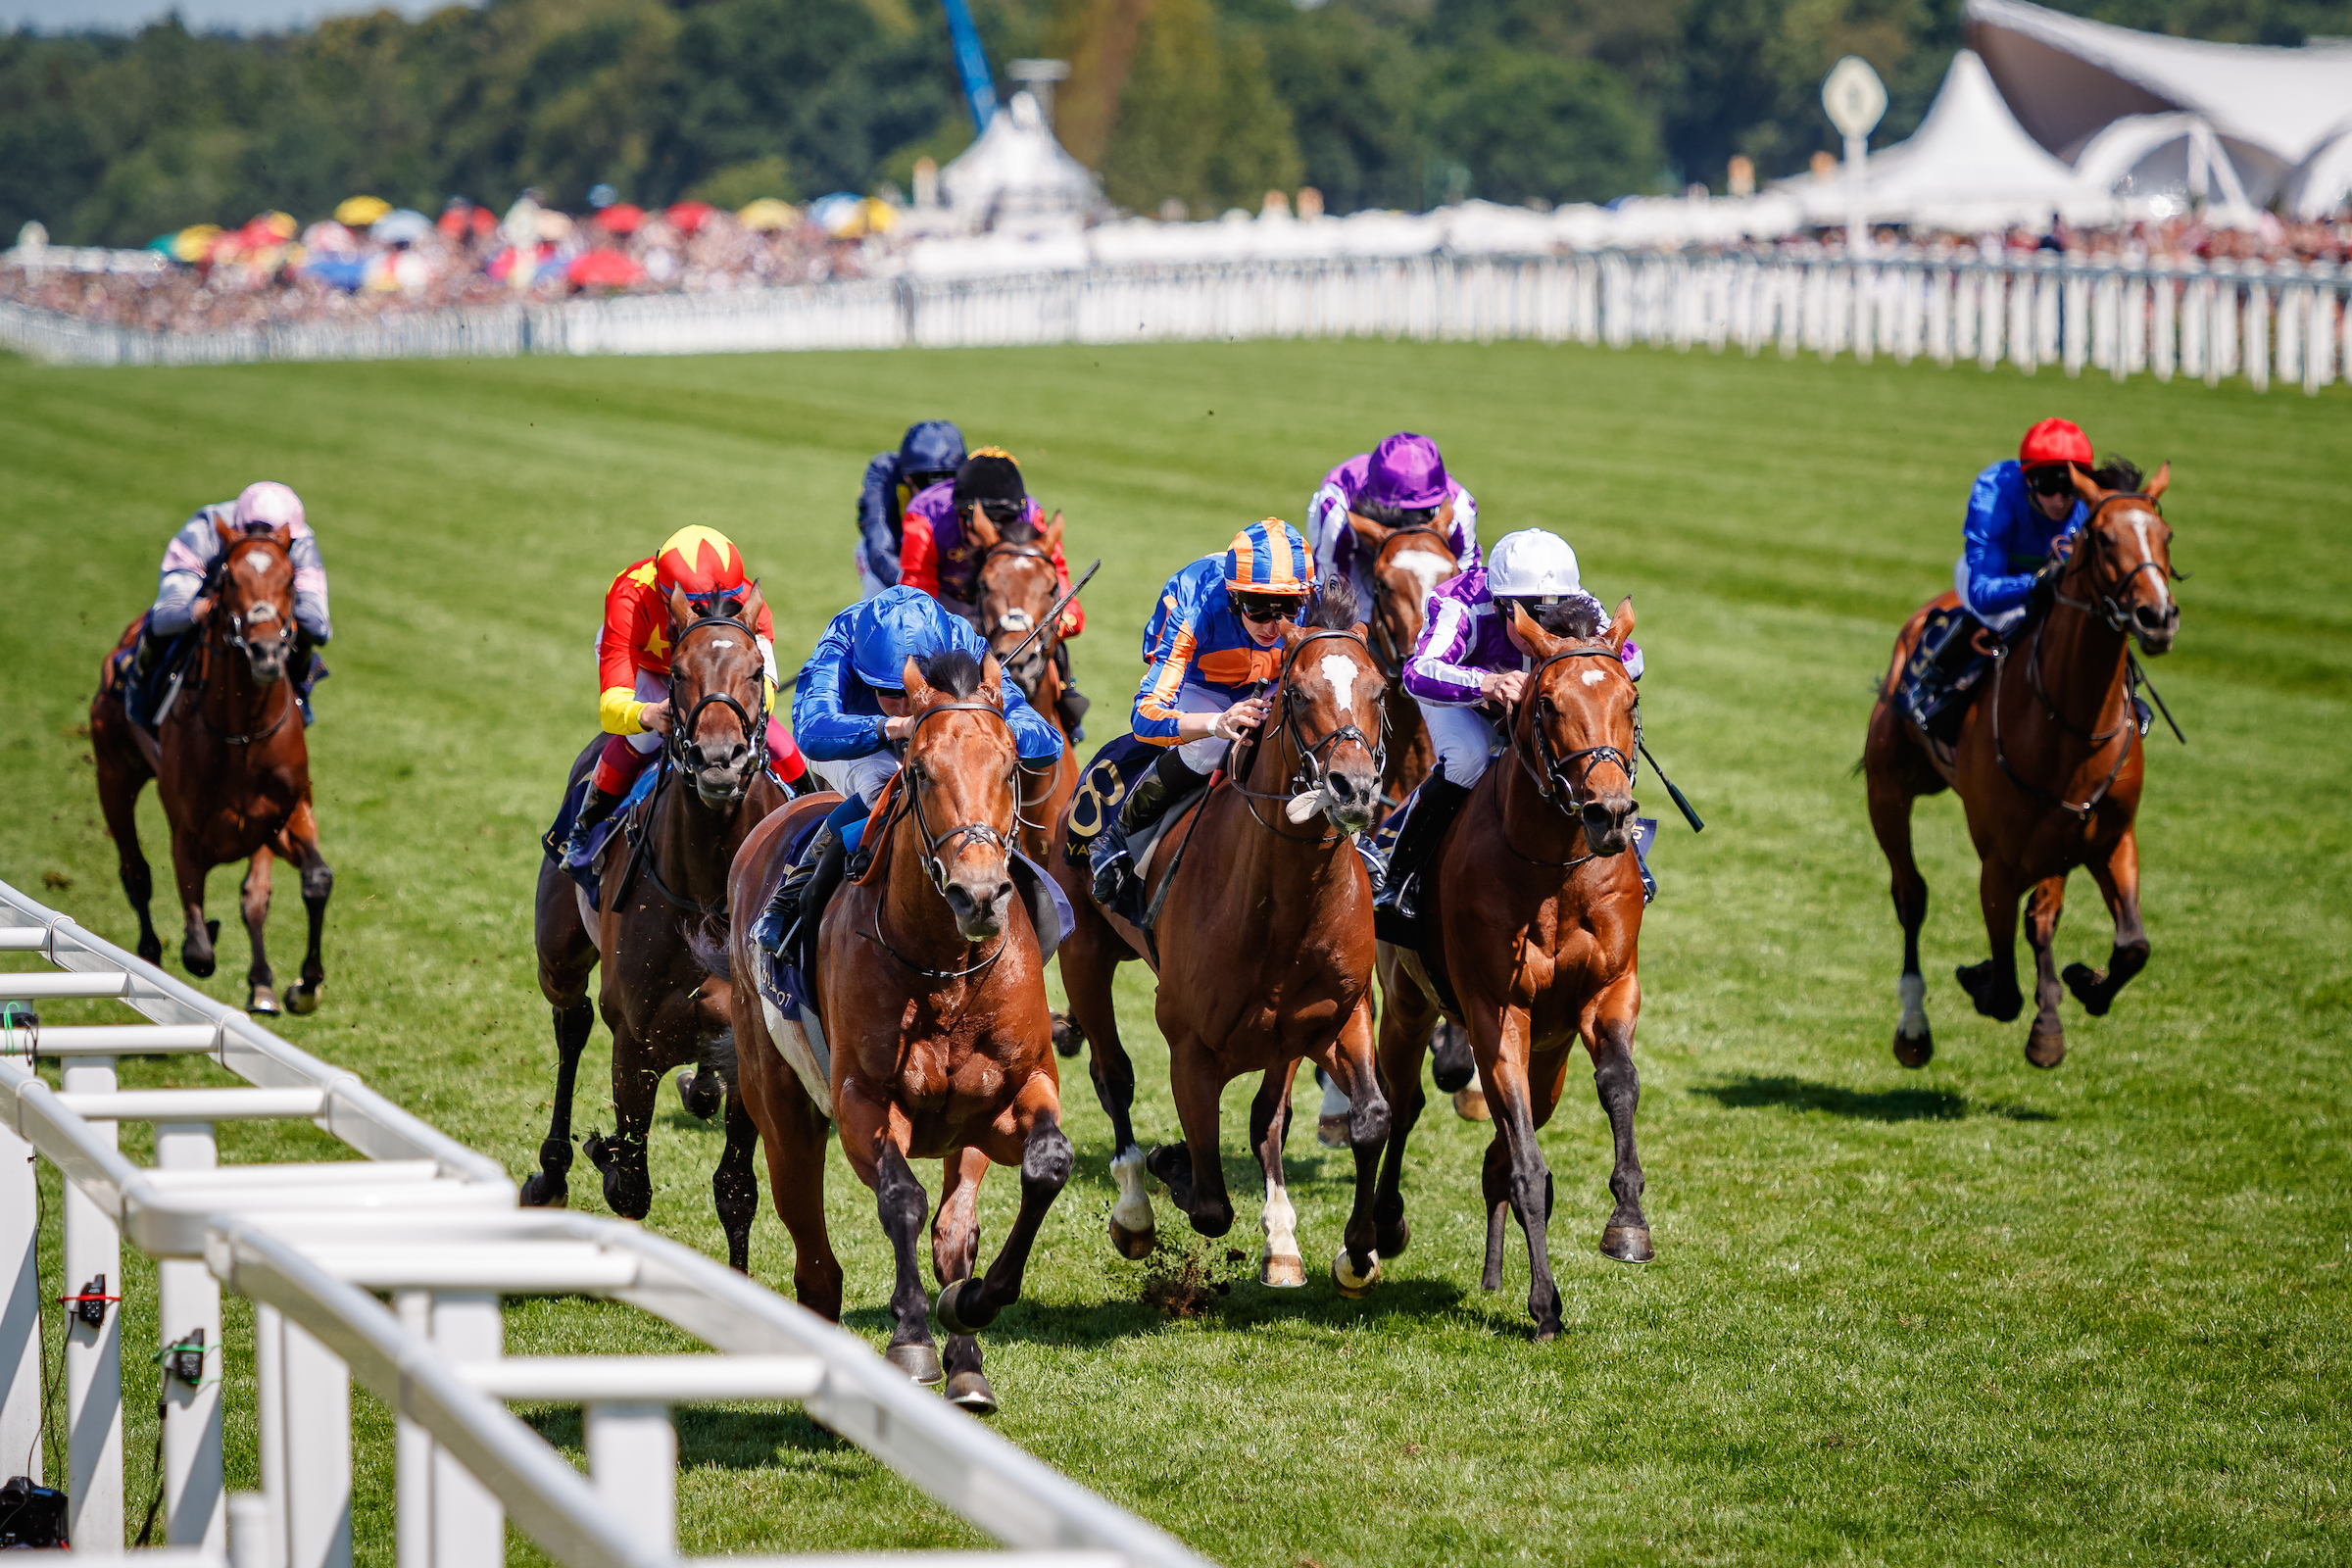 KING EDWARD VII STAKES (GR2) - Old Persian, un autre Derby pour Godolphin